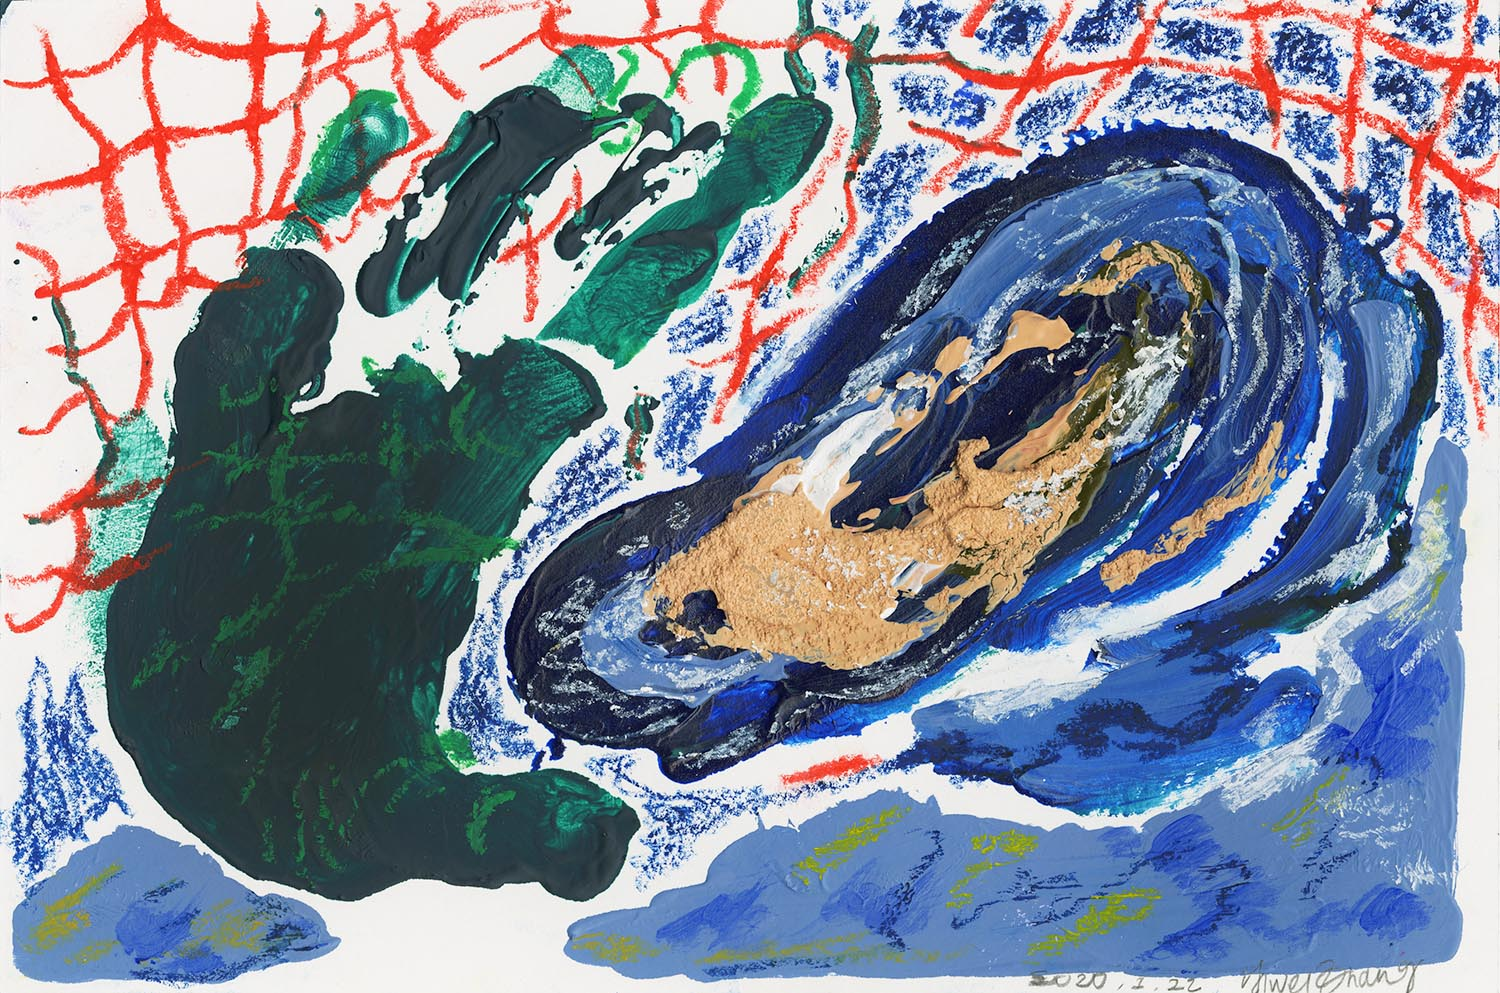 Yiwei Zhang: Untitled (oyster), 2020, Acrylic, Oil Pastel, Graphite on Paper, 6x9 inches.